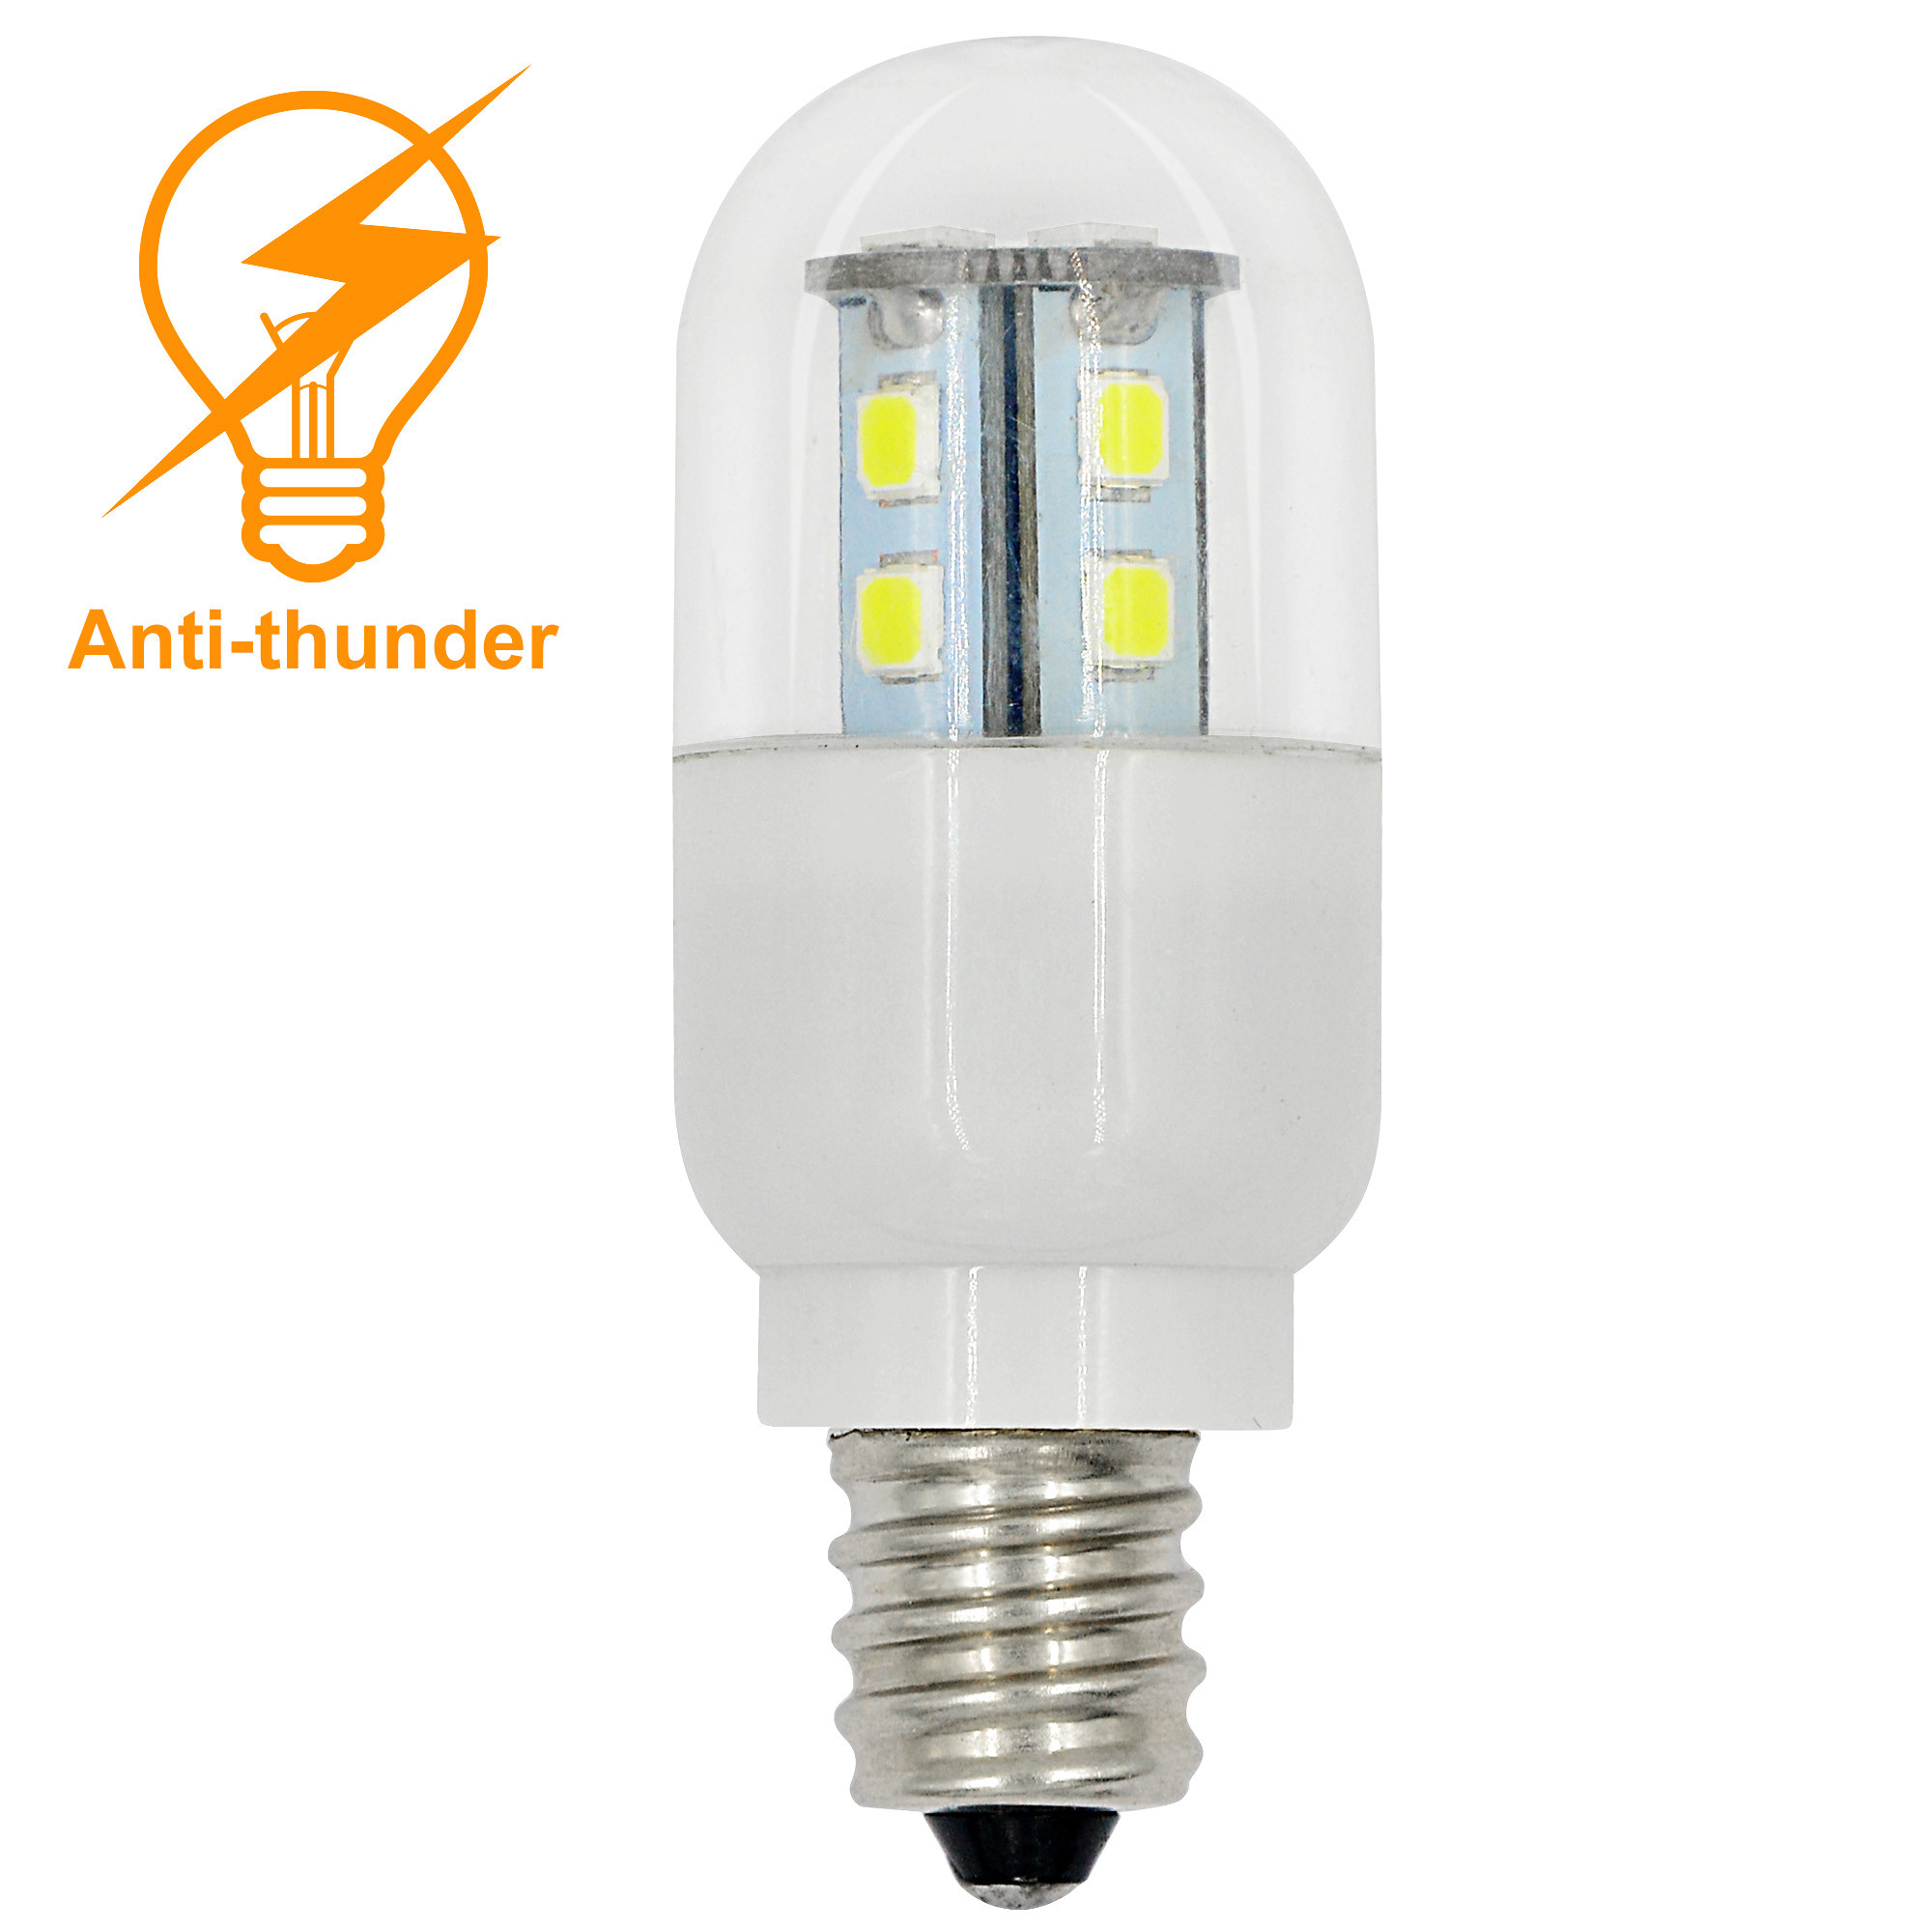 mengs antithunder e12 15w led light 15x smd led bulb lamp - E12 Led Bulb